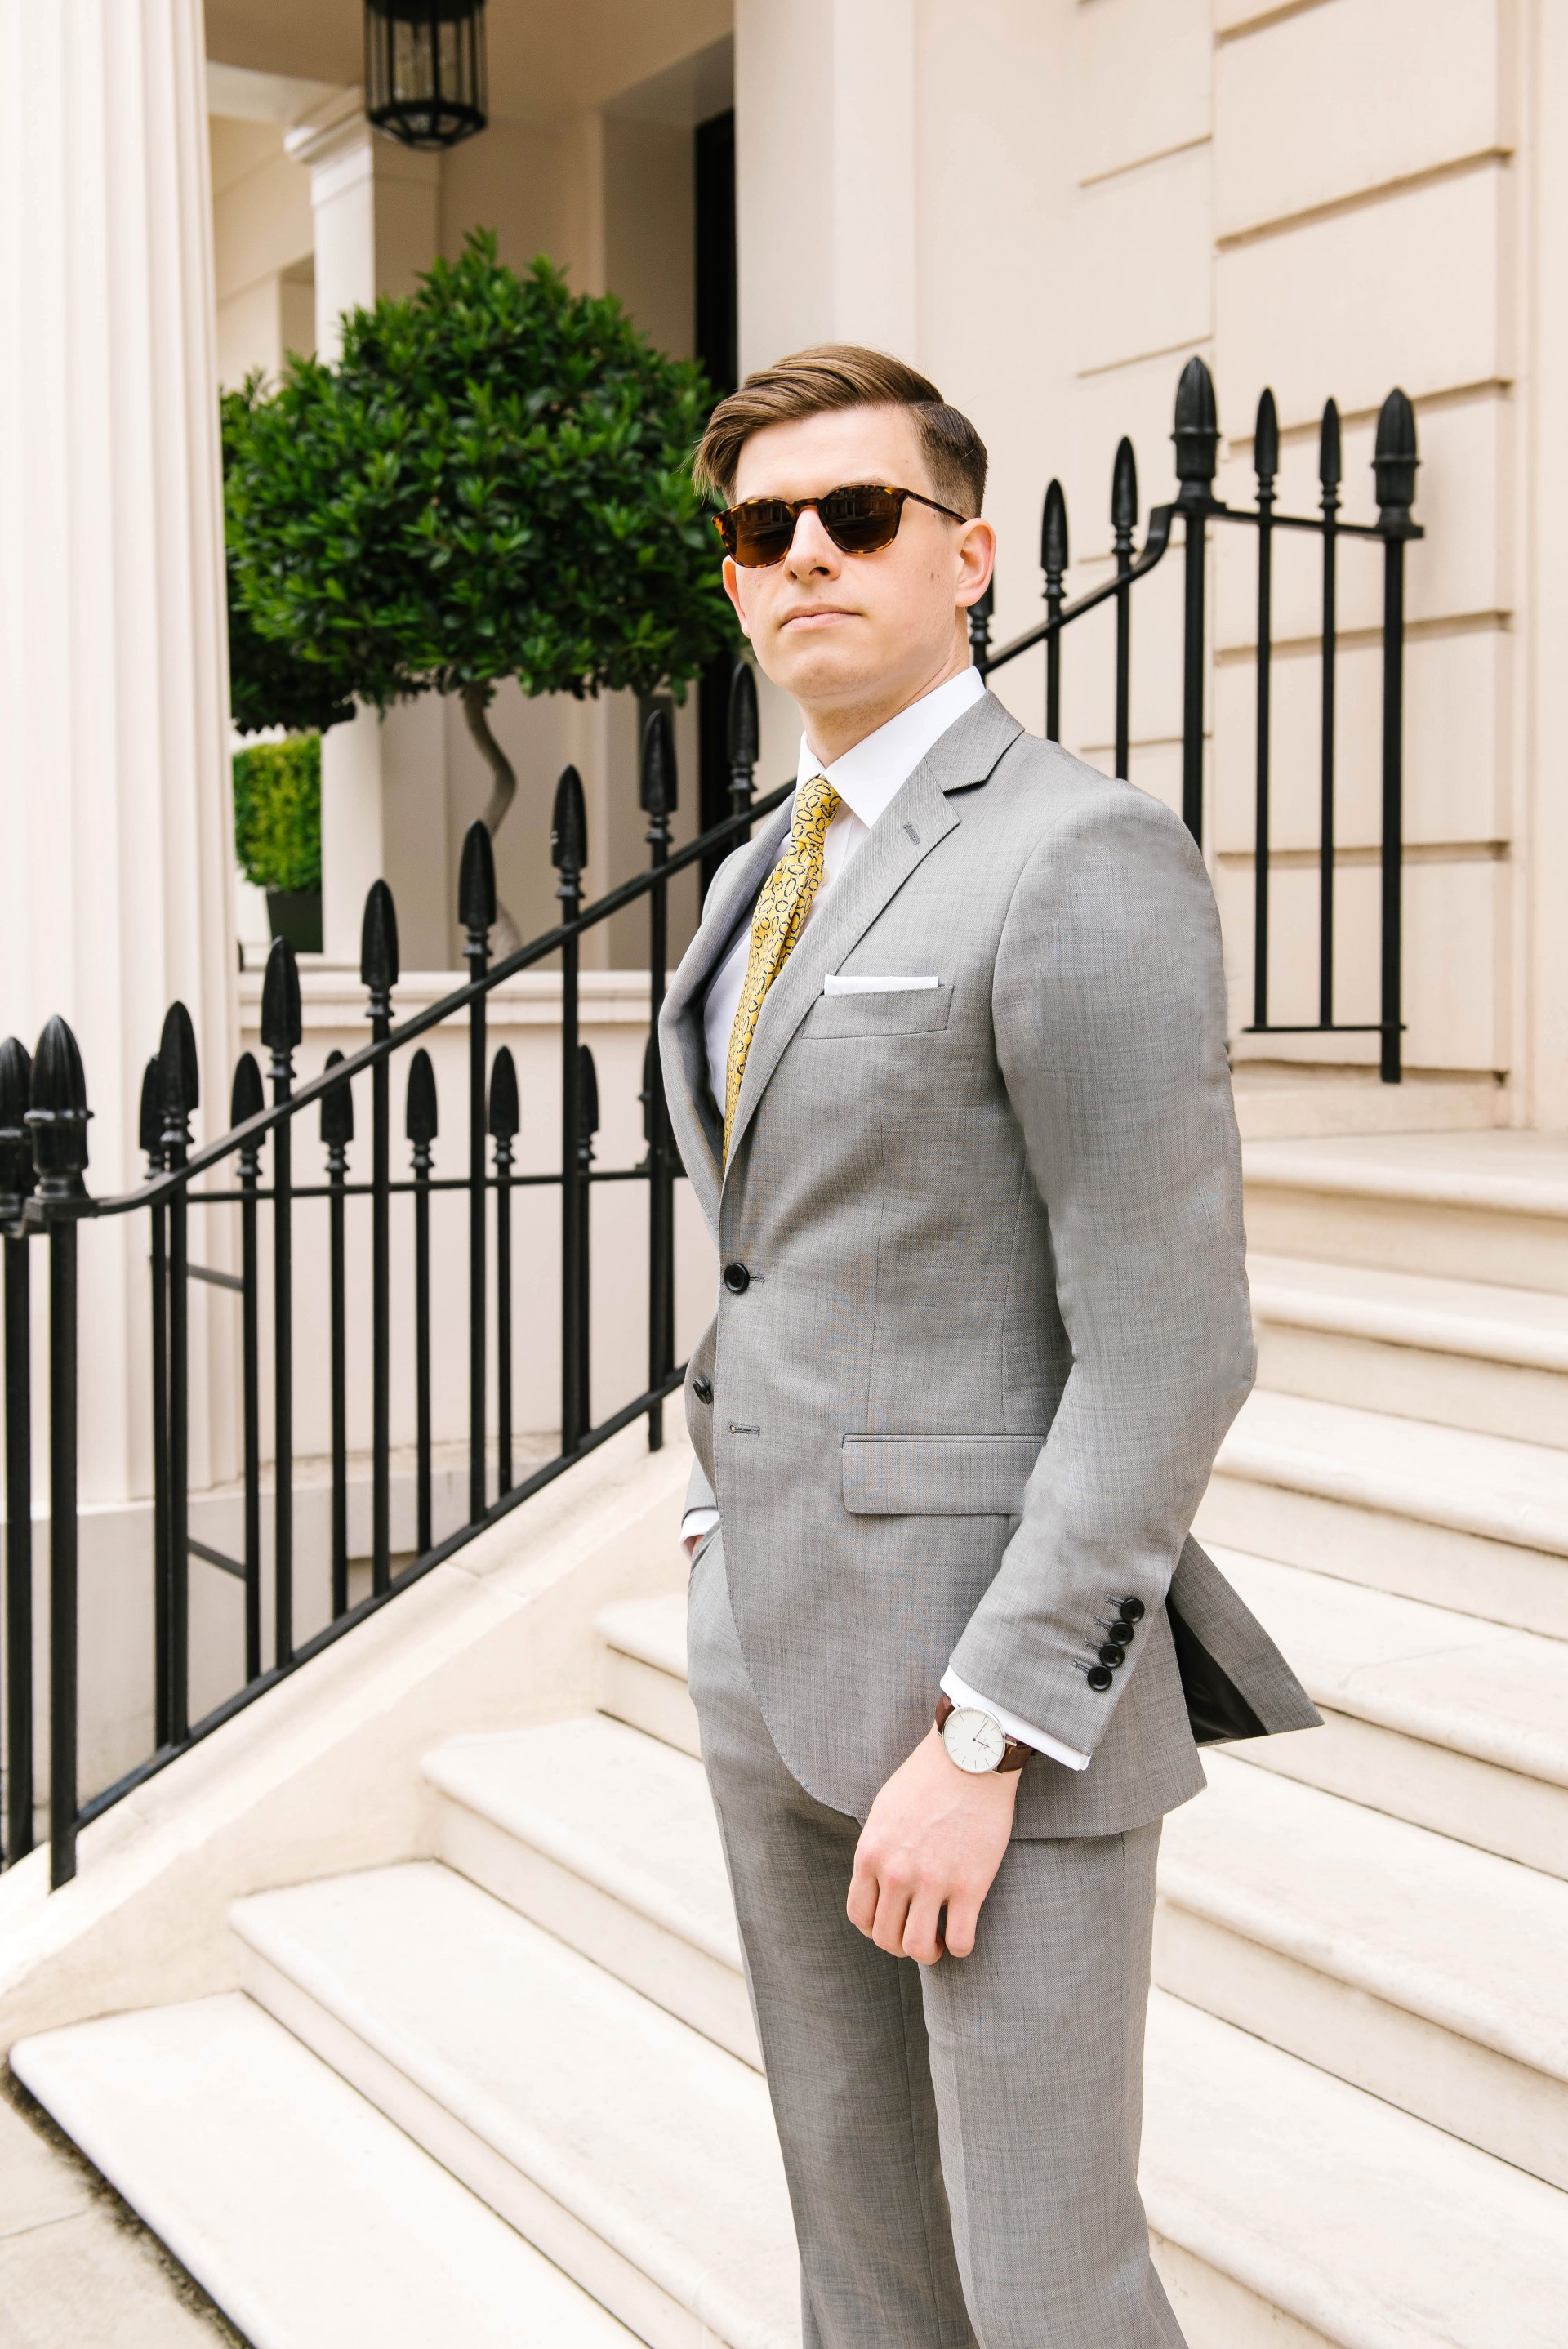 Men's Suit Style - Yellow Tie & Grey Suit 2